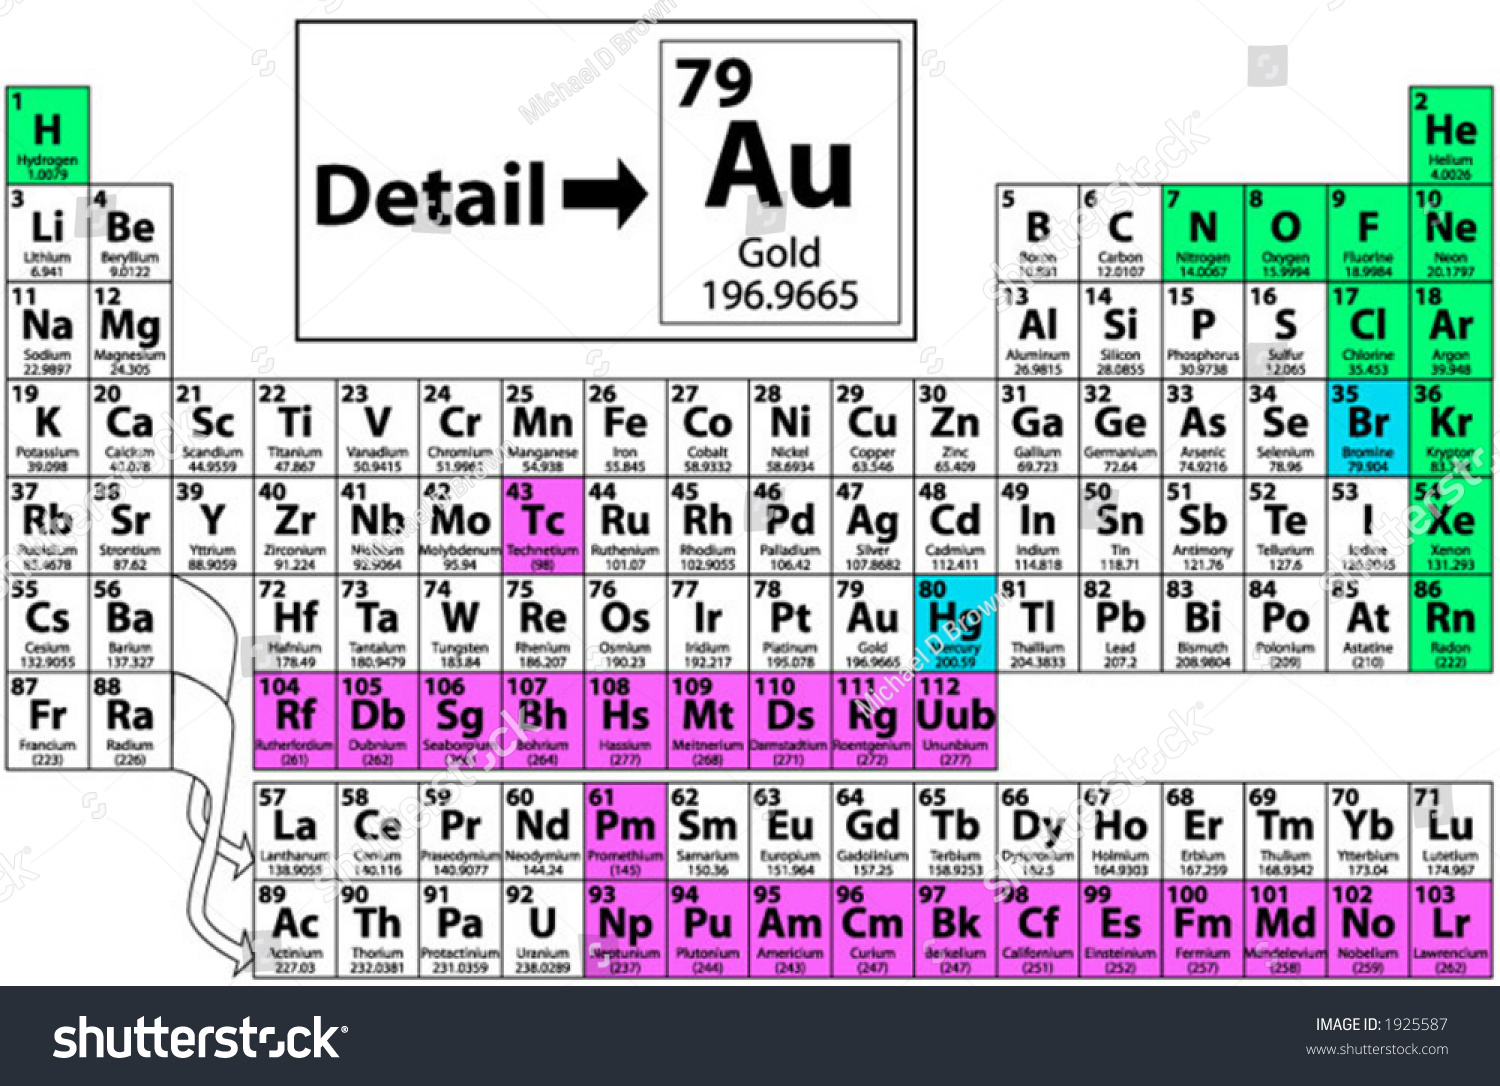 New periodic table in afrikaans table afrikaans in periodic including of table atomic the periodic complete elements number urtaz Choice Image